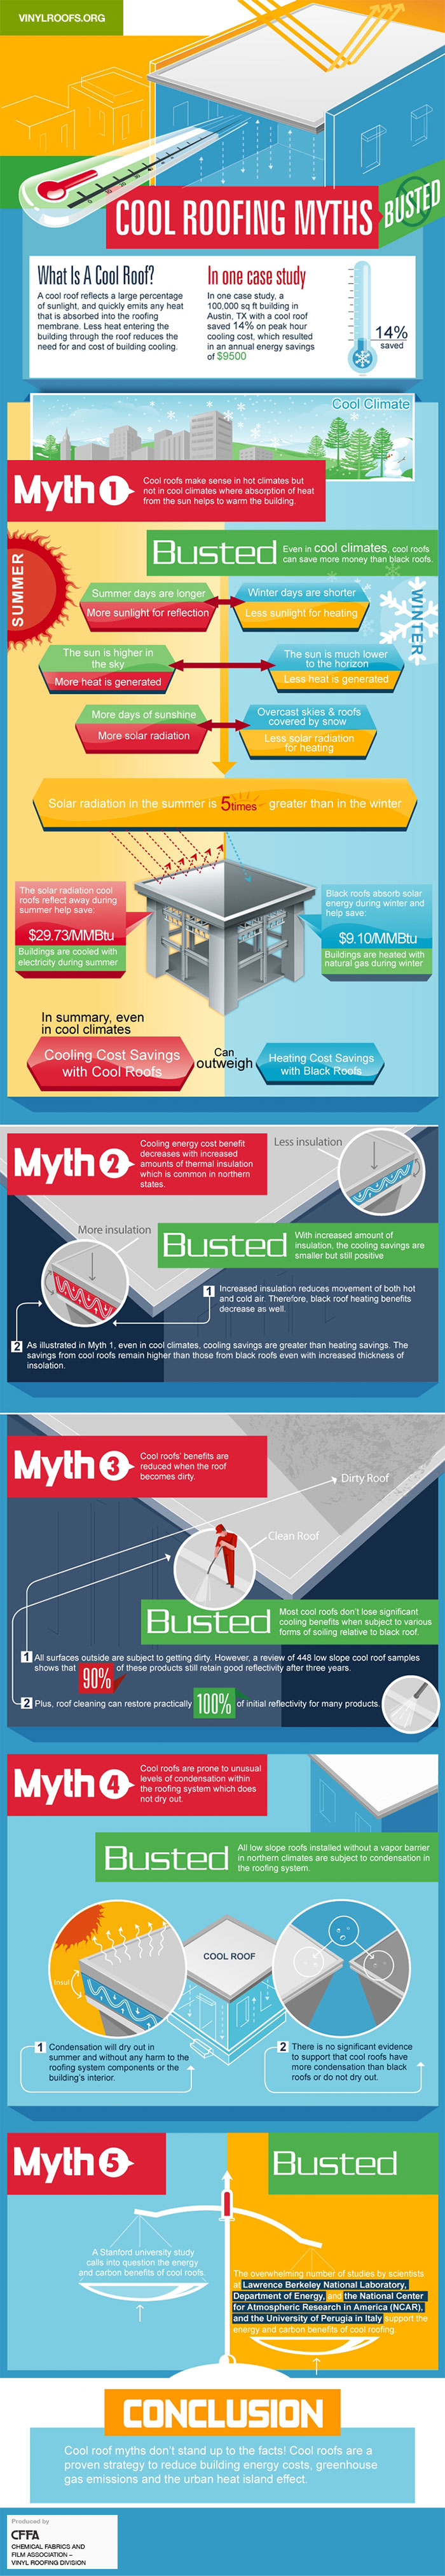 Cool Roofing Myths Facts Information Single Ply Roofing Systems Cool Roofs Are Proven Strategy Cool Roof Single Ply Roofing Energy Efficient Roofing